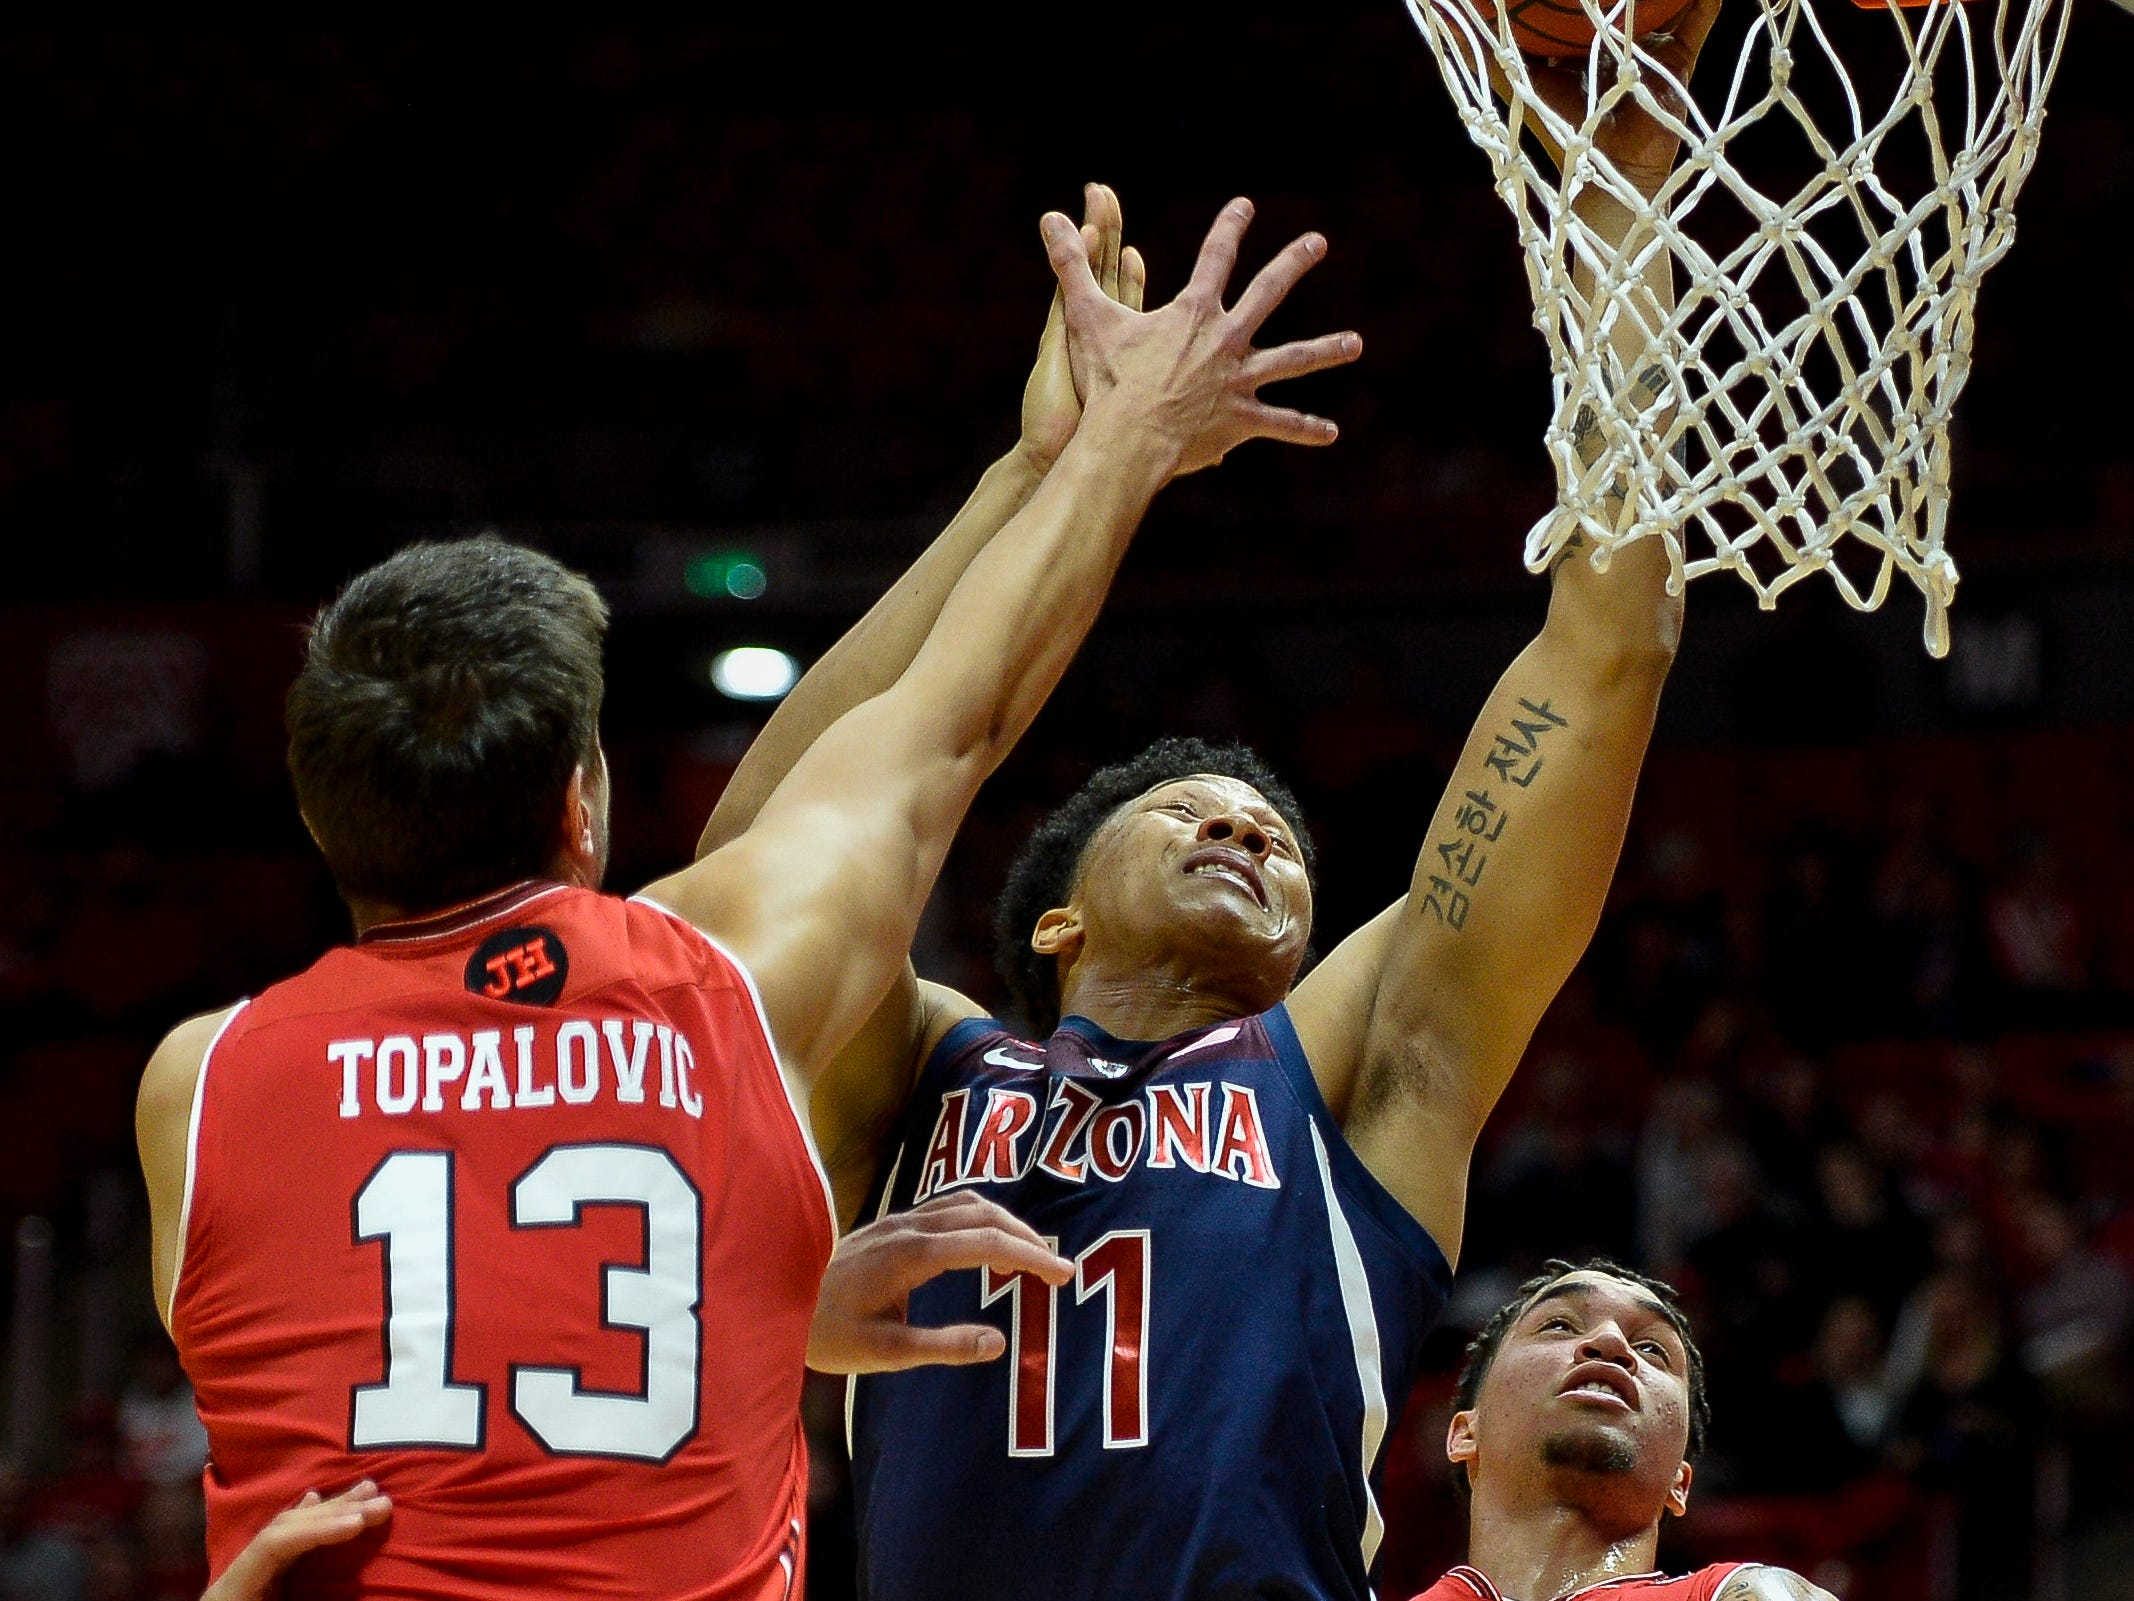 Arizona forward Ira Lee (11) attempts a shot between Utah forwards Novak Topalovic, left, and Timmy Allen, right, during the first half of an NCAA college basketball game Thursday, Feb. 14, 2019, in Salt Lake City.